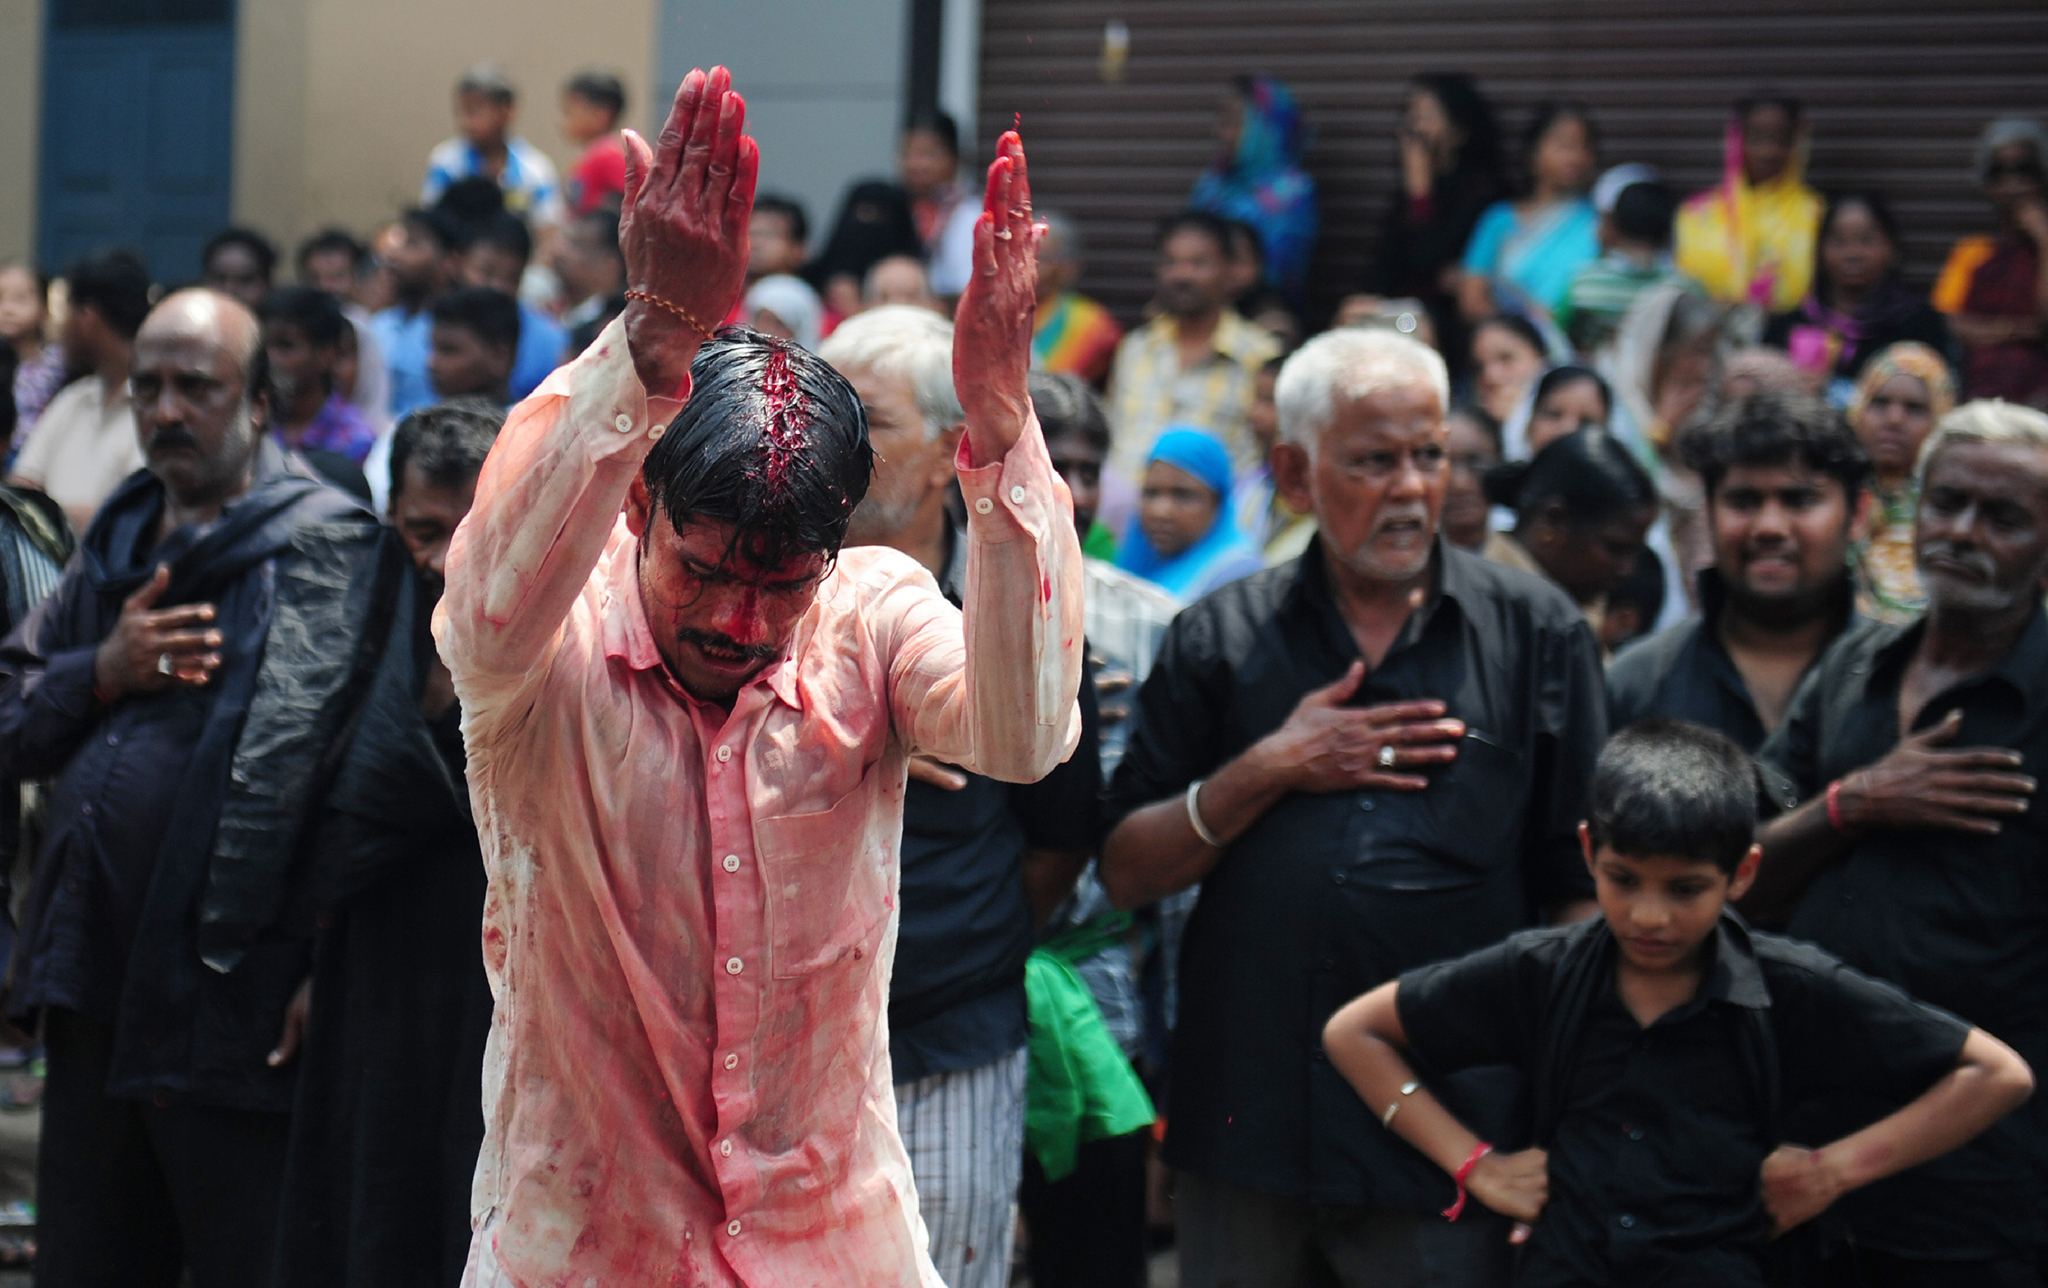 Indian Shia Muslim men flagellate themselves during the mourning procession on the tenth day of Muharram, which marks the day of Ashura, in Chennai on October 12, 2016. Ashura mourns the death of Imam Hussein, a grandson of the Prophet Mohammed, who was killed by armies of the Yazid near Karbala in 680 AD. / AFP PHOTO / ARUN SANKARARUN SANKAR/AFP/Getty Images